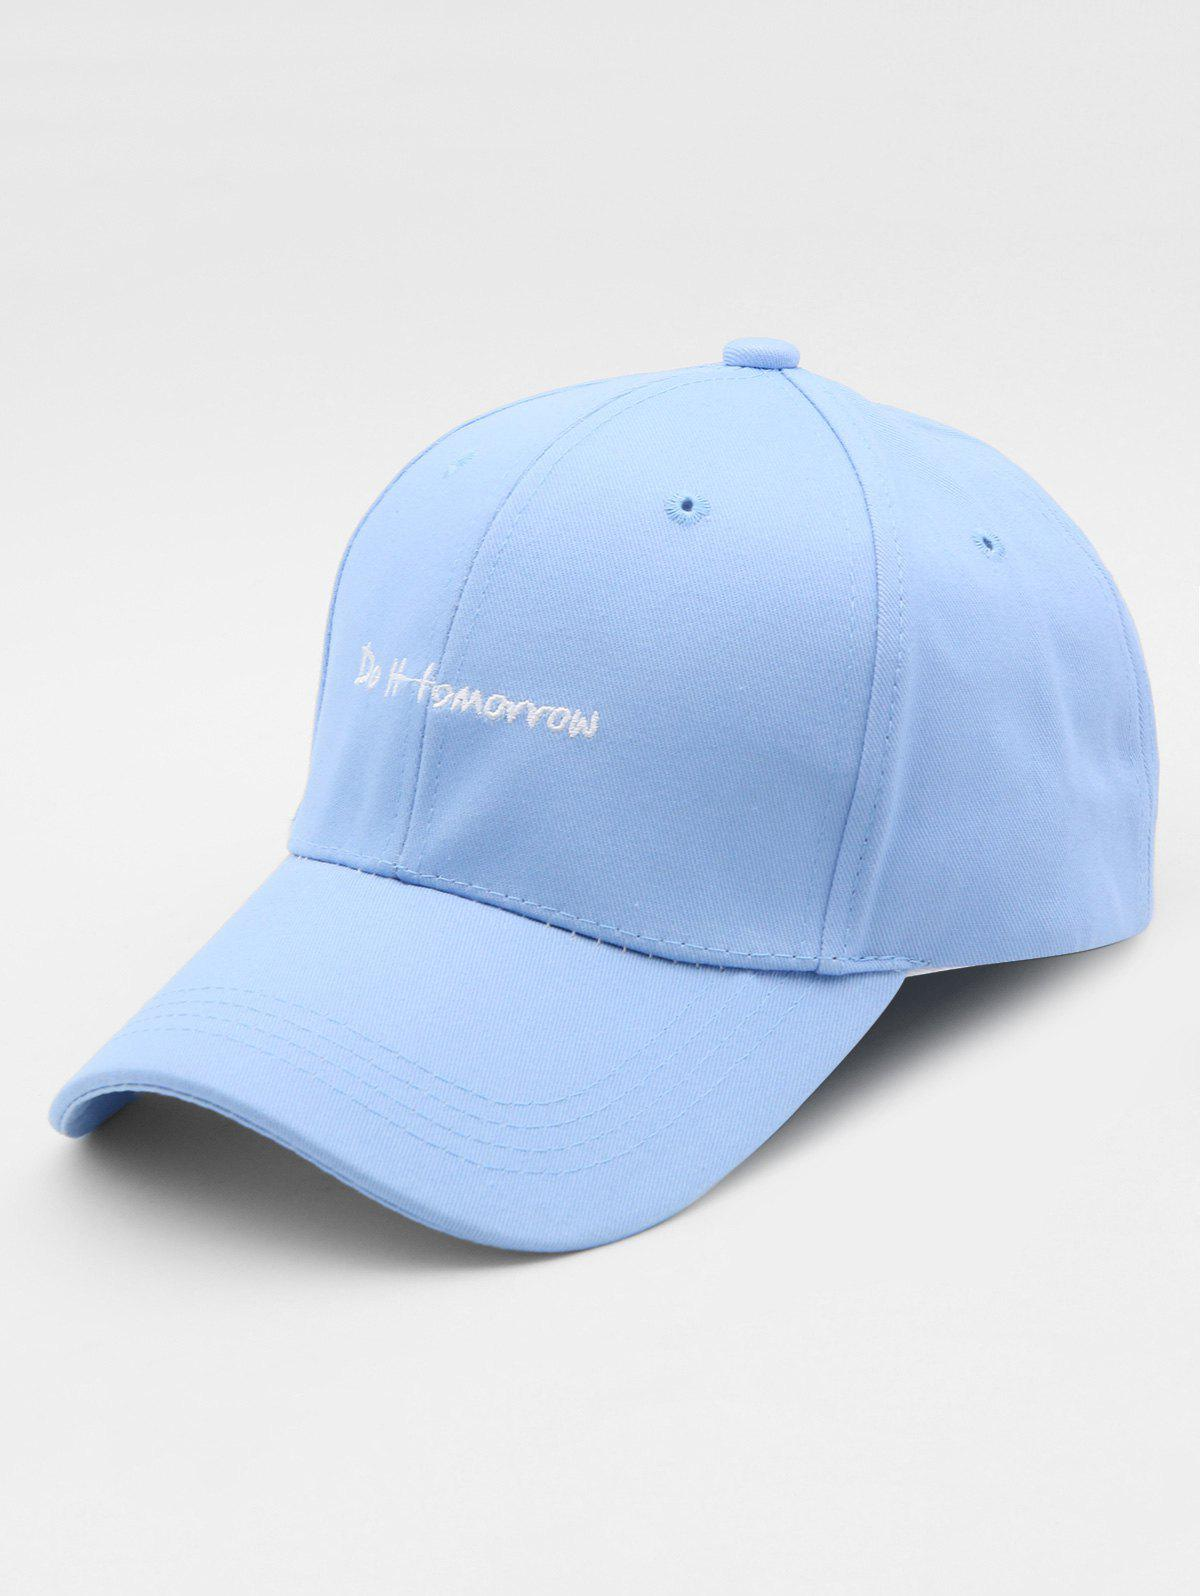 New Embroidered Letter Sports Hip Hop Cap